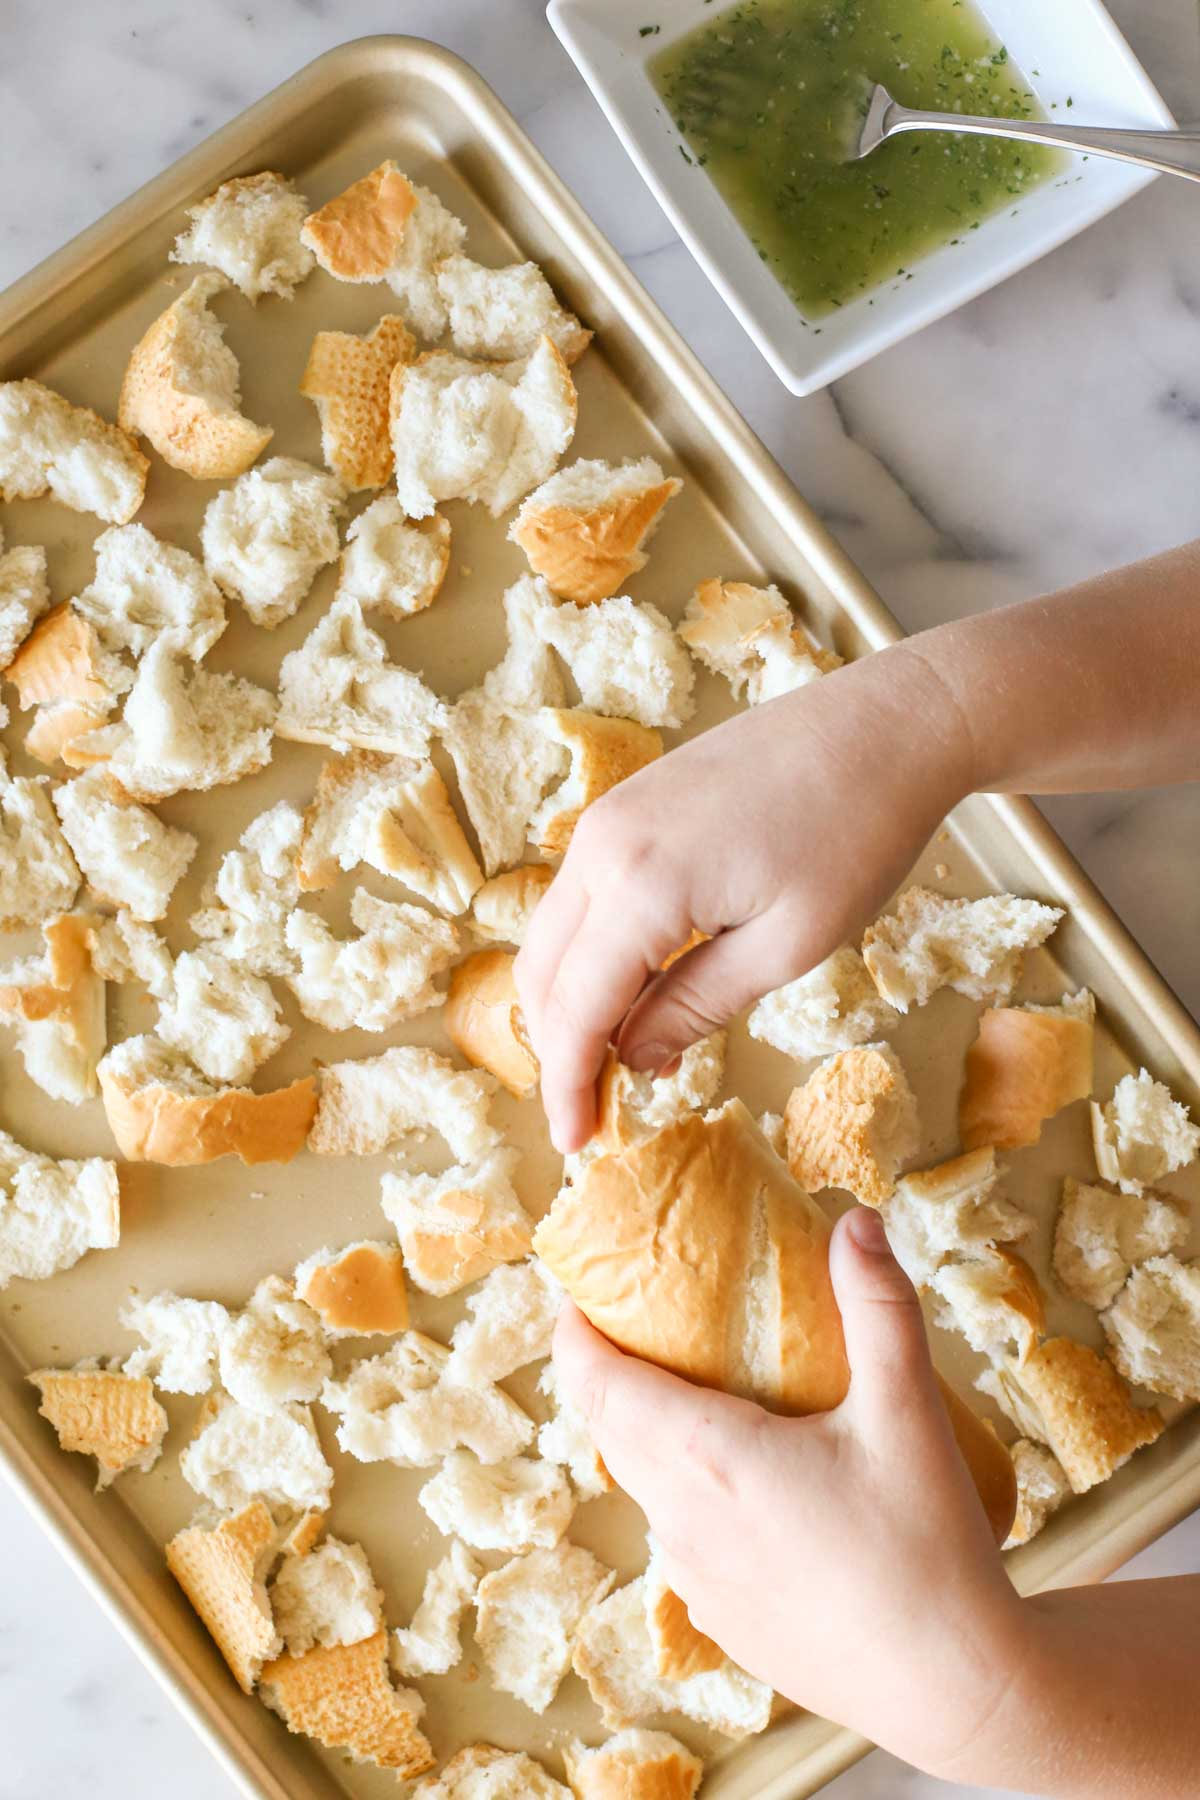 Overhead shot of a hand tearing the French bread into pieces over a baking sheet, with a square bowl of the butter mixture next to the baking sheet.